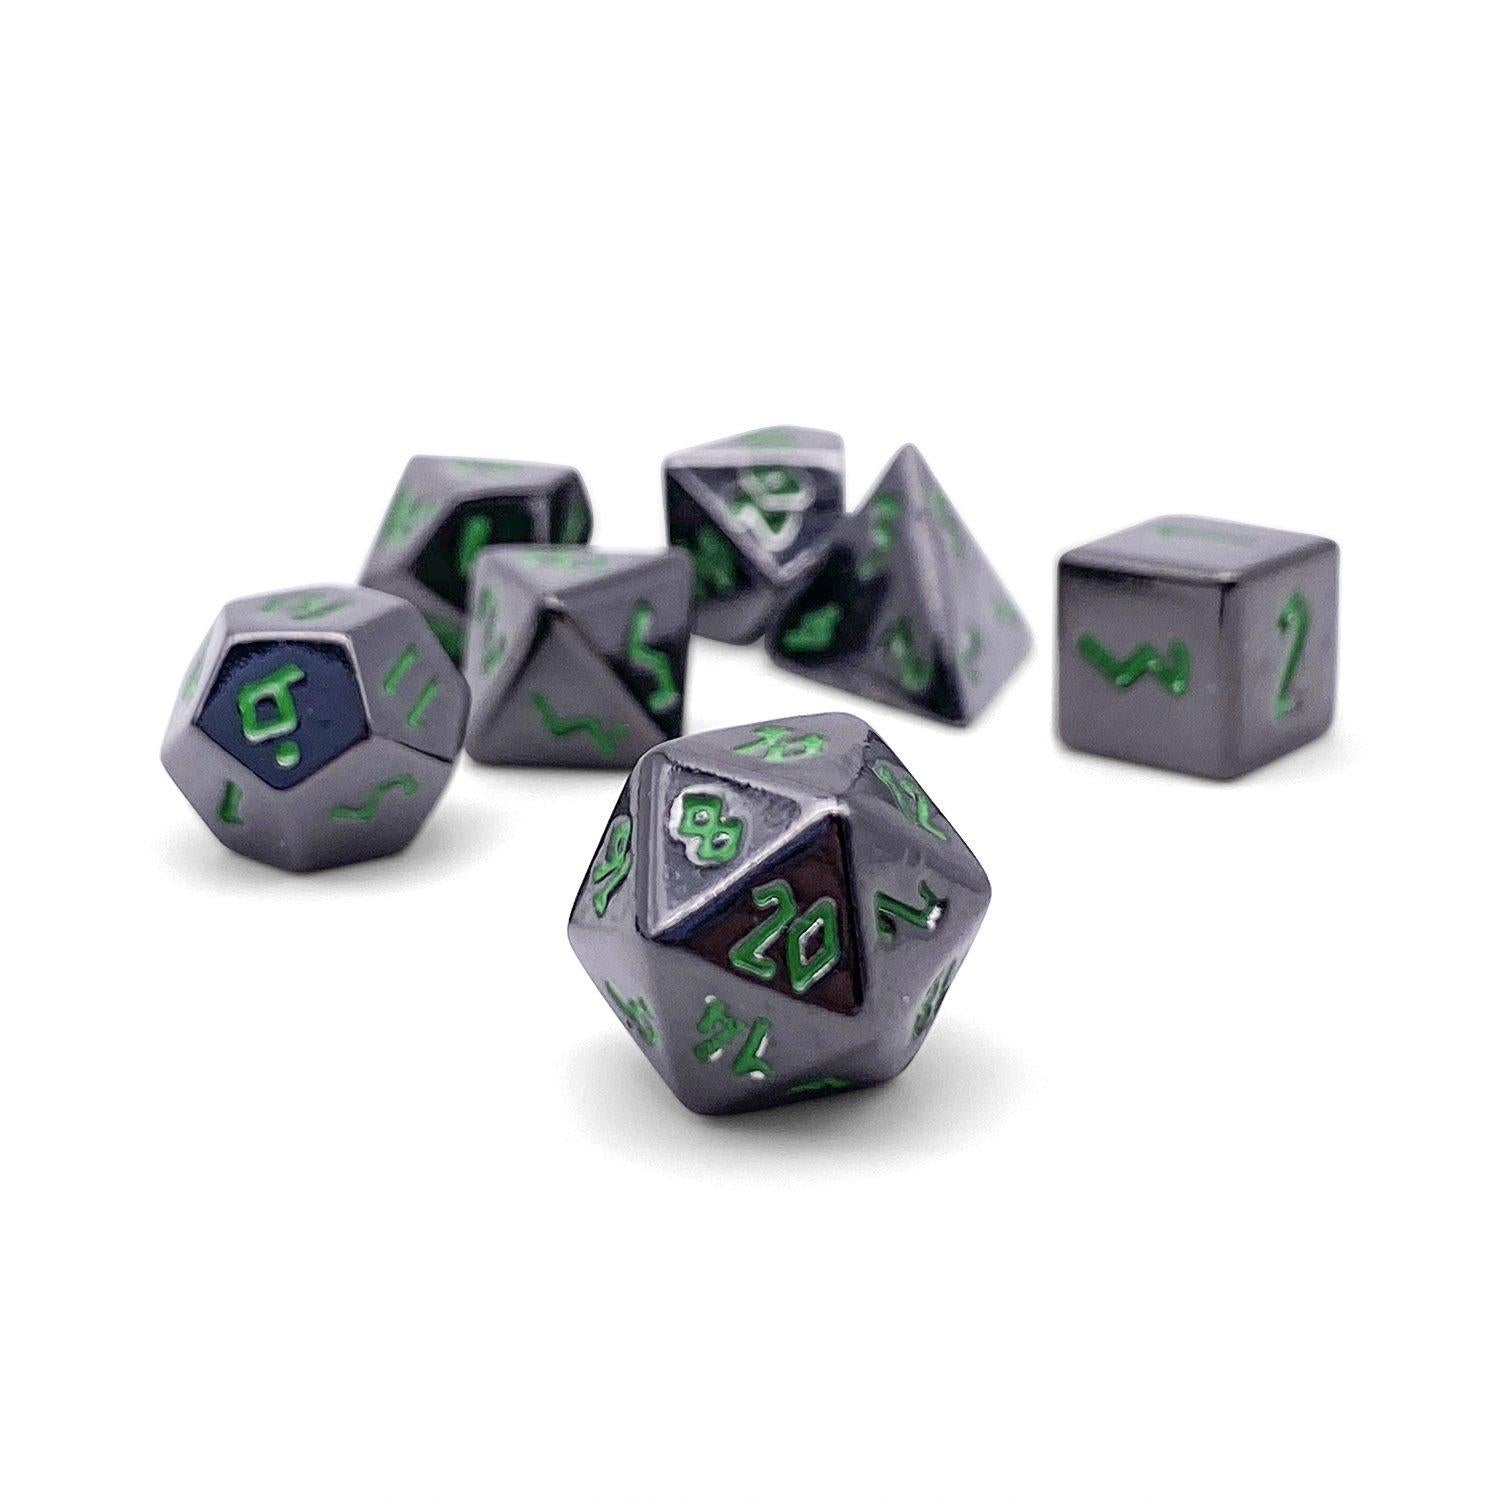 Poisoned Daggers Pebble ™ Dice - 10mm Alloy Mini Polyhedral Dice Set